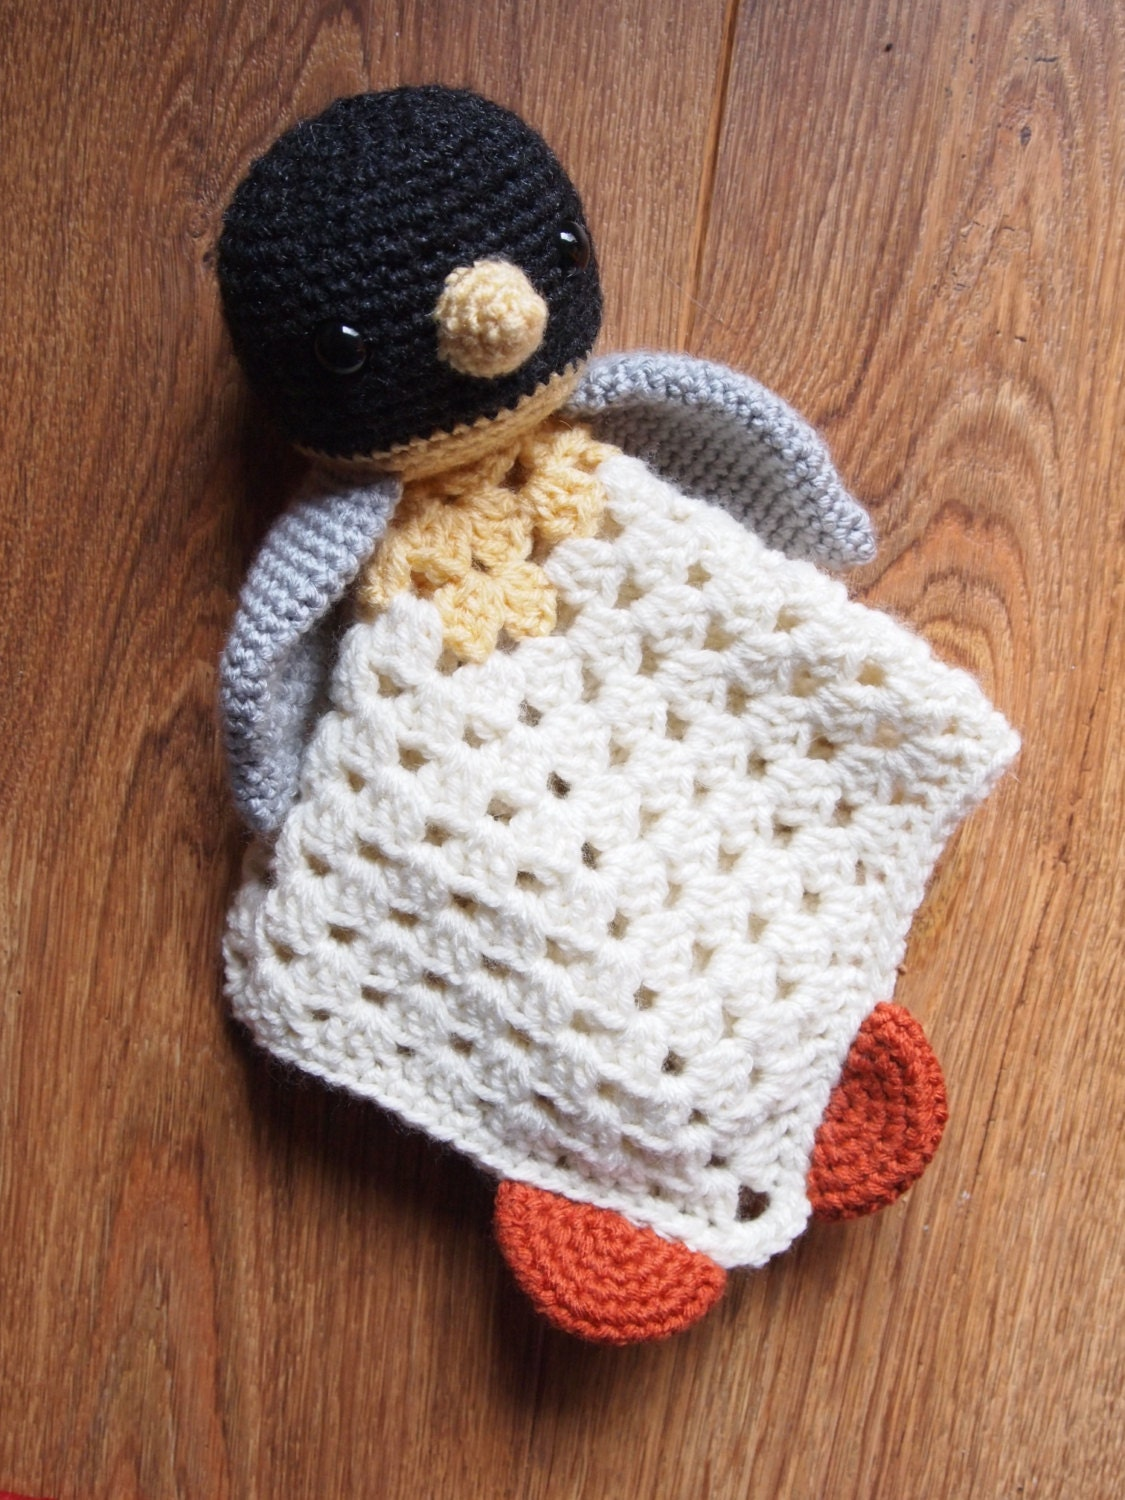 Crochet Pattern For Baby Security Blanket : Baby Penguin Crochet Security Blanket Lovie Doll